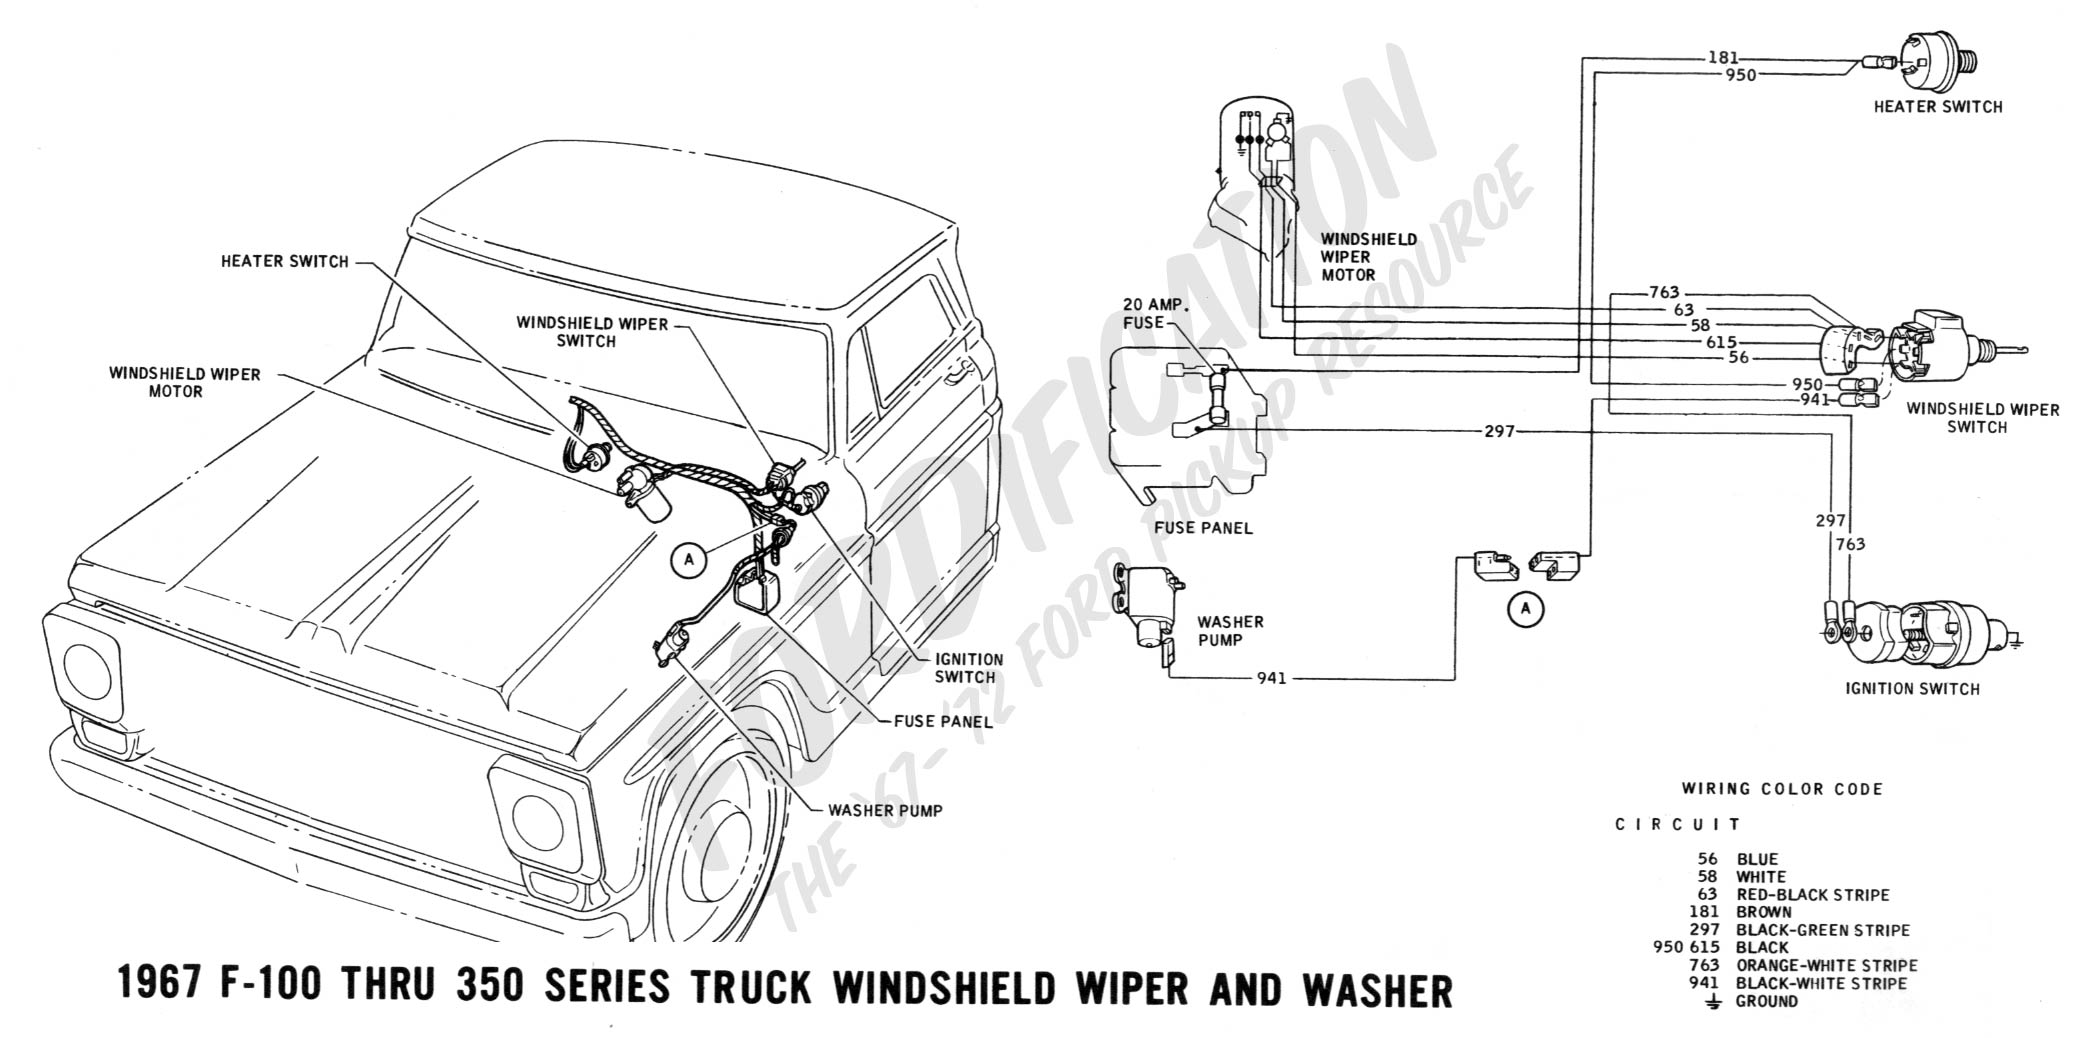 wiring 1967wipers ford truck technical drawings and schematics section h wiring wiper switch wiring diagram at eliteediting.co